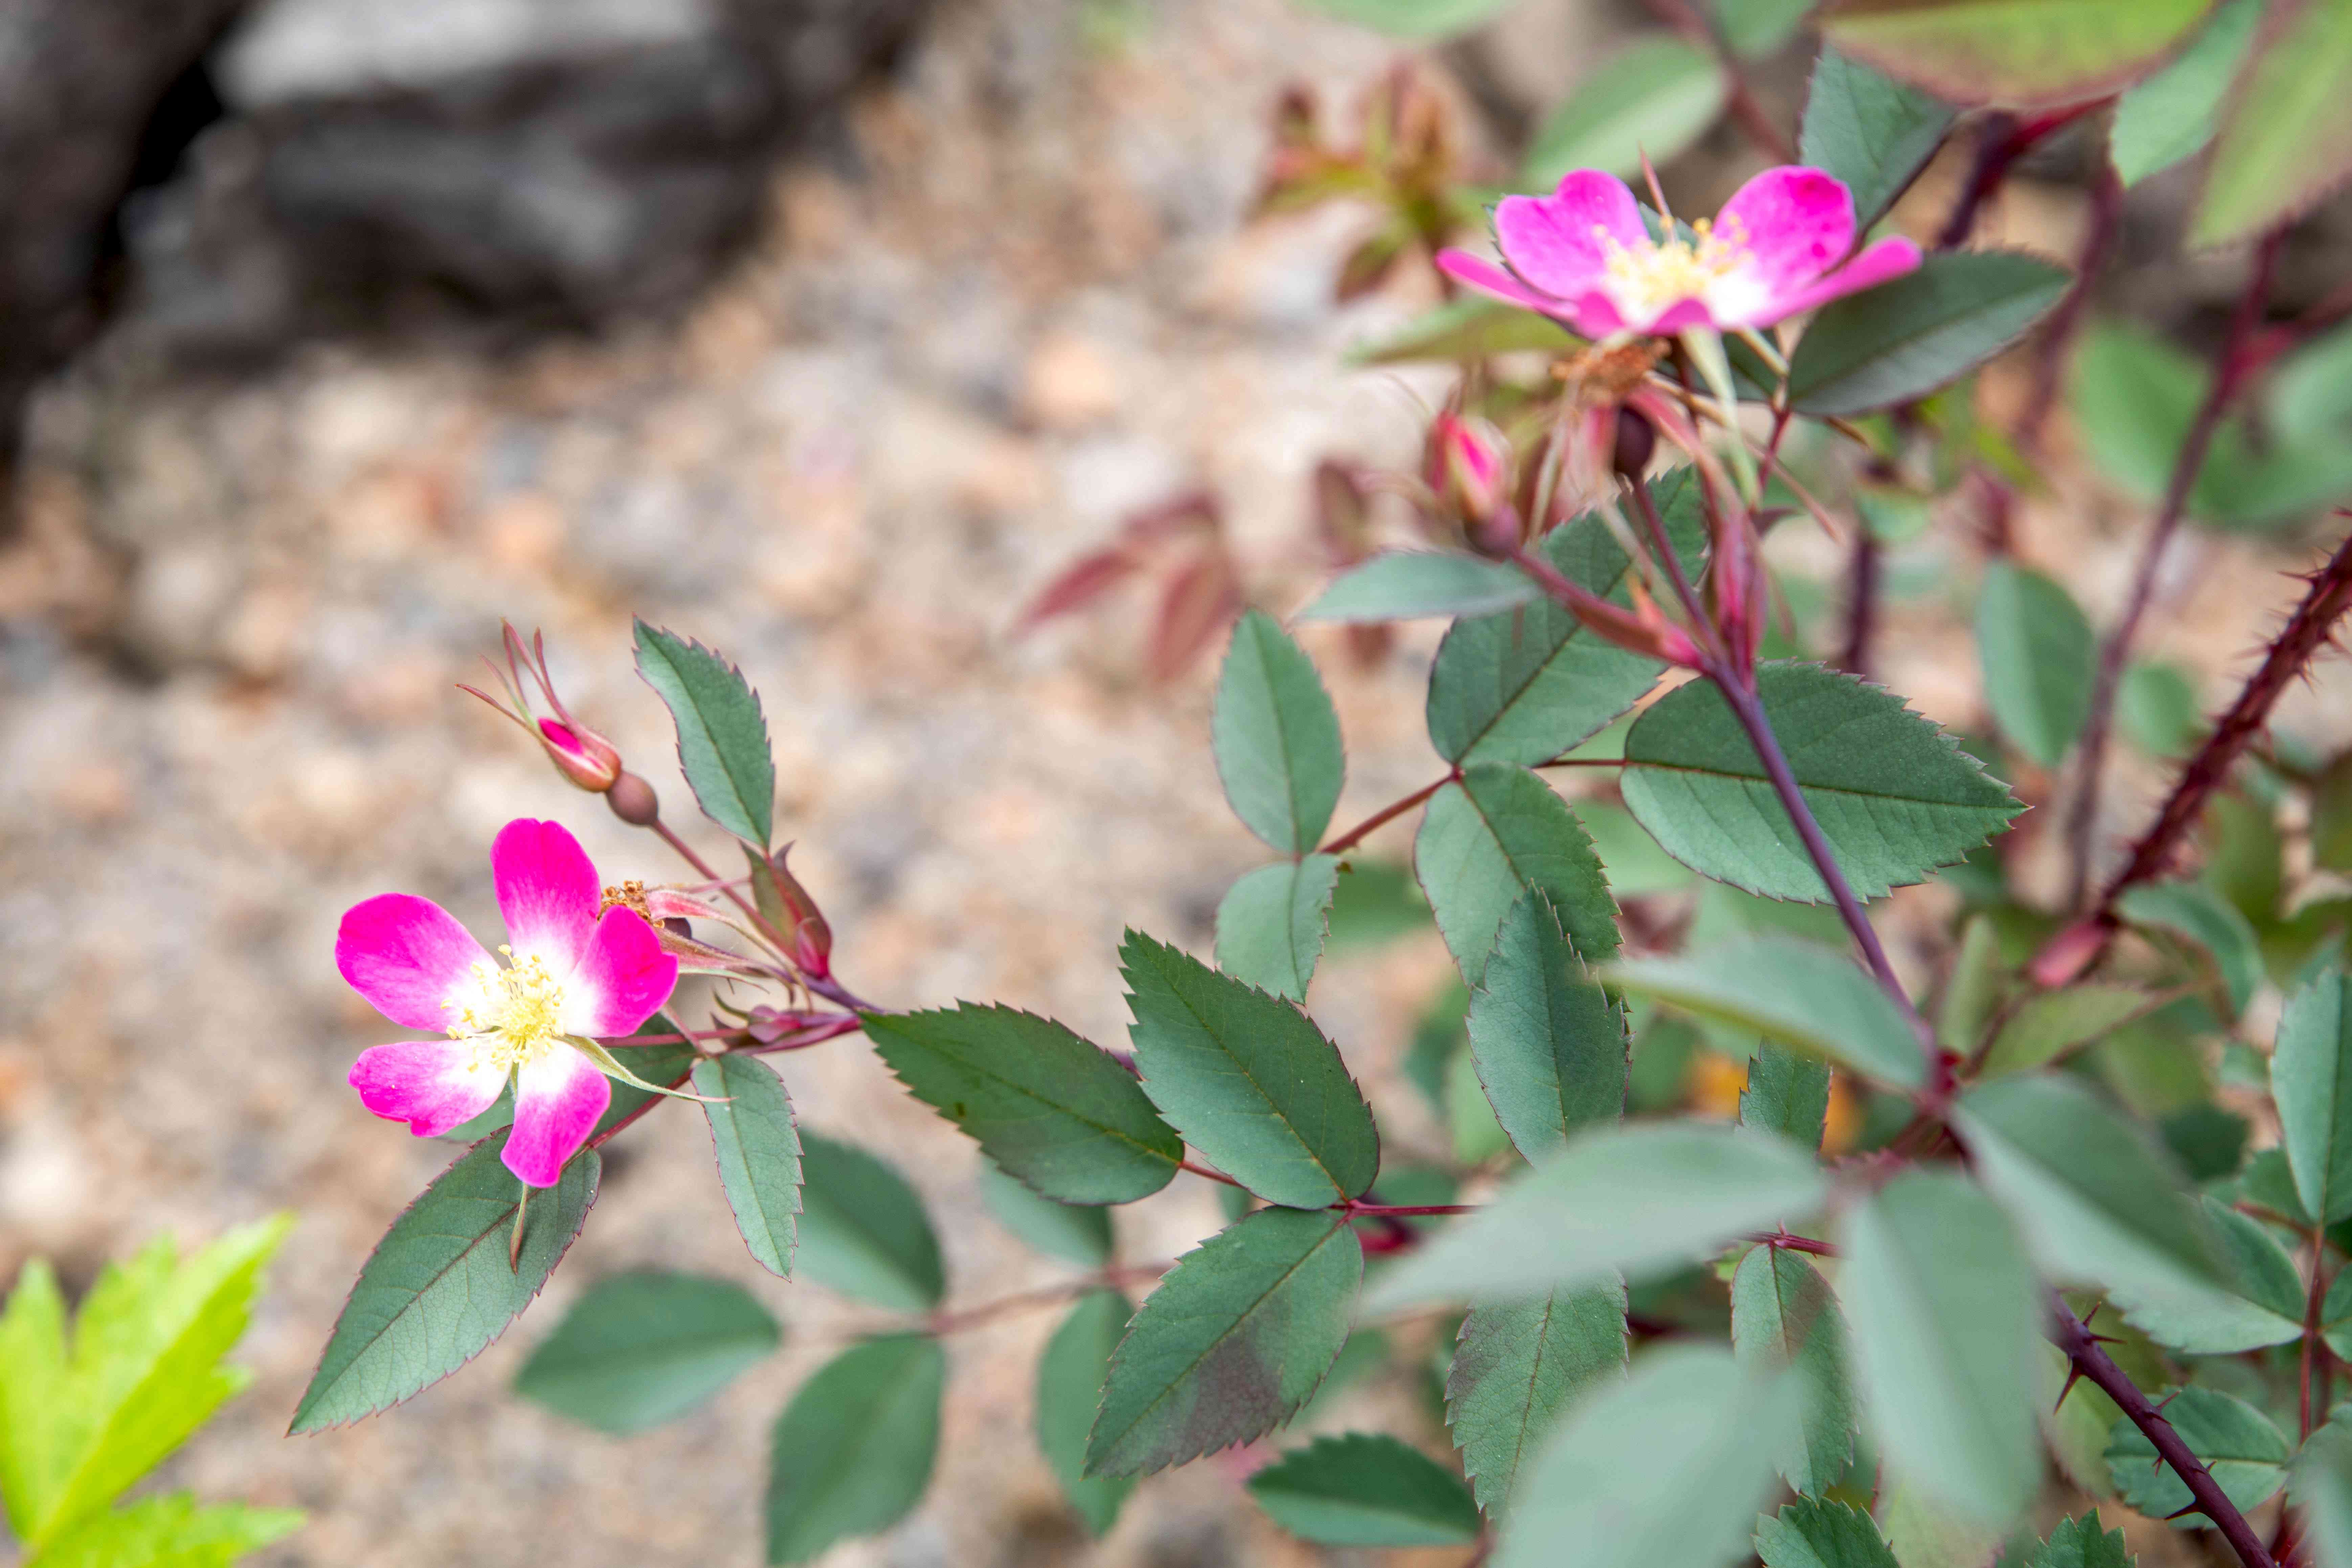 Redleaf rose plant with pink flowers on end of red stems and blue-green leaves